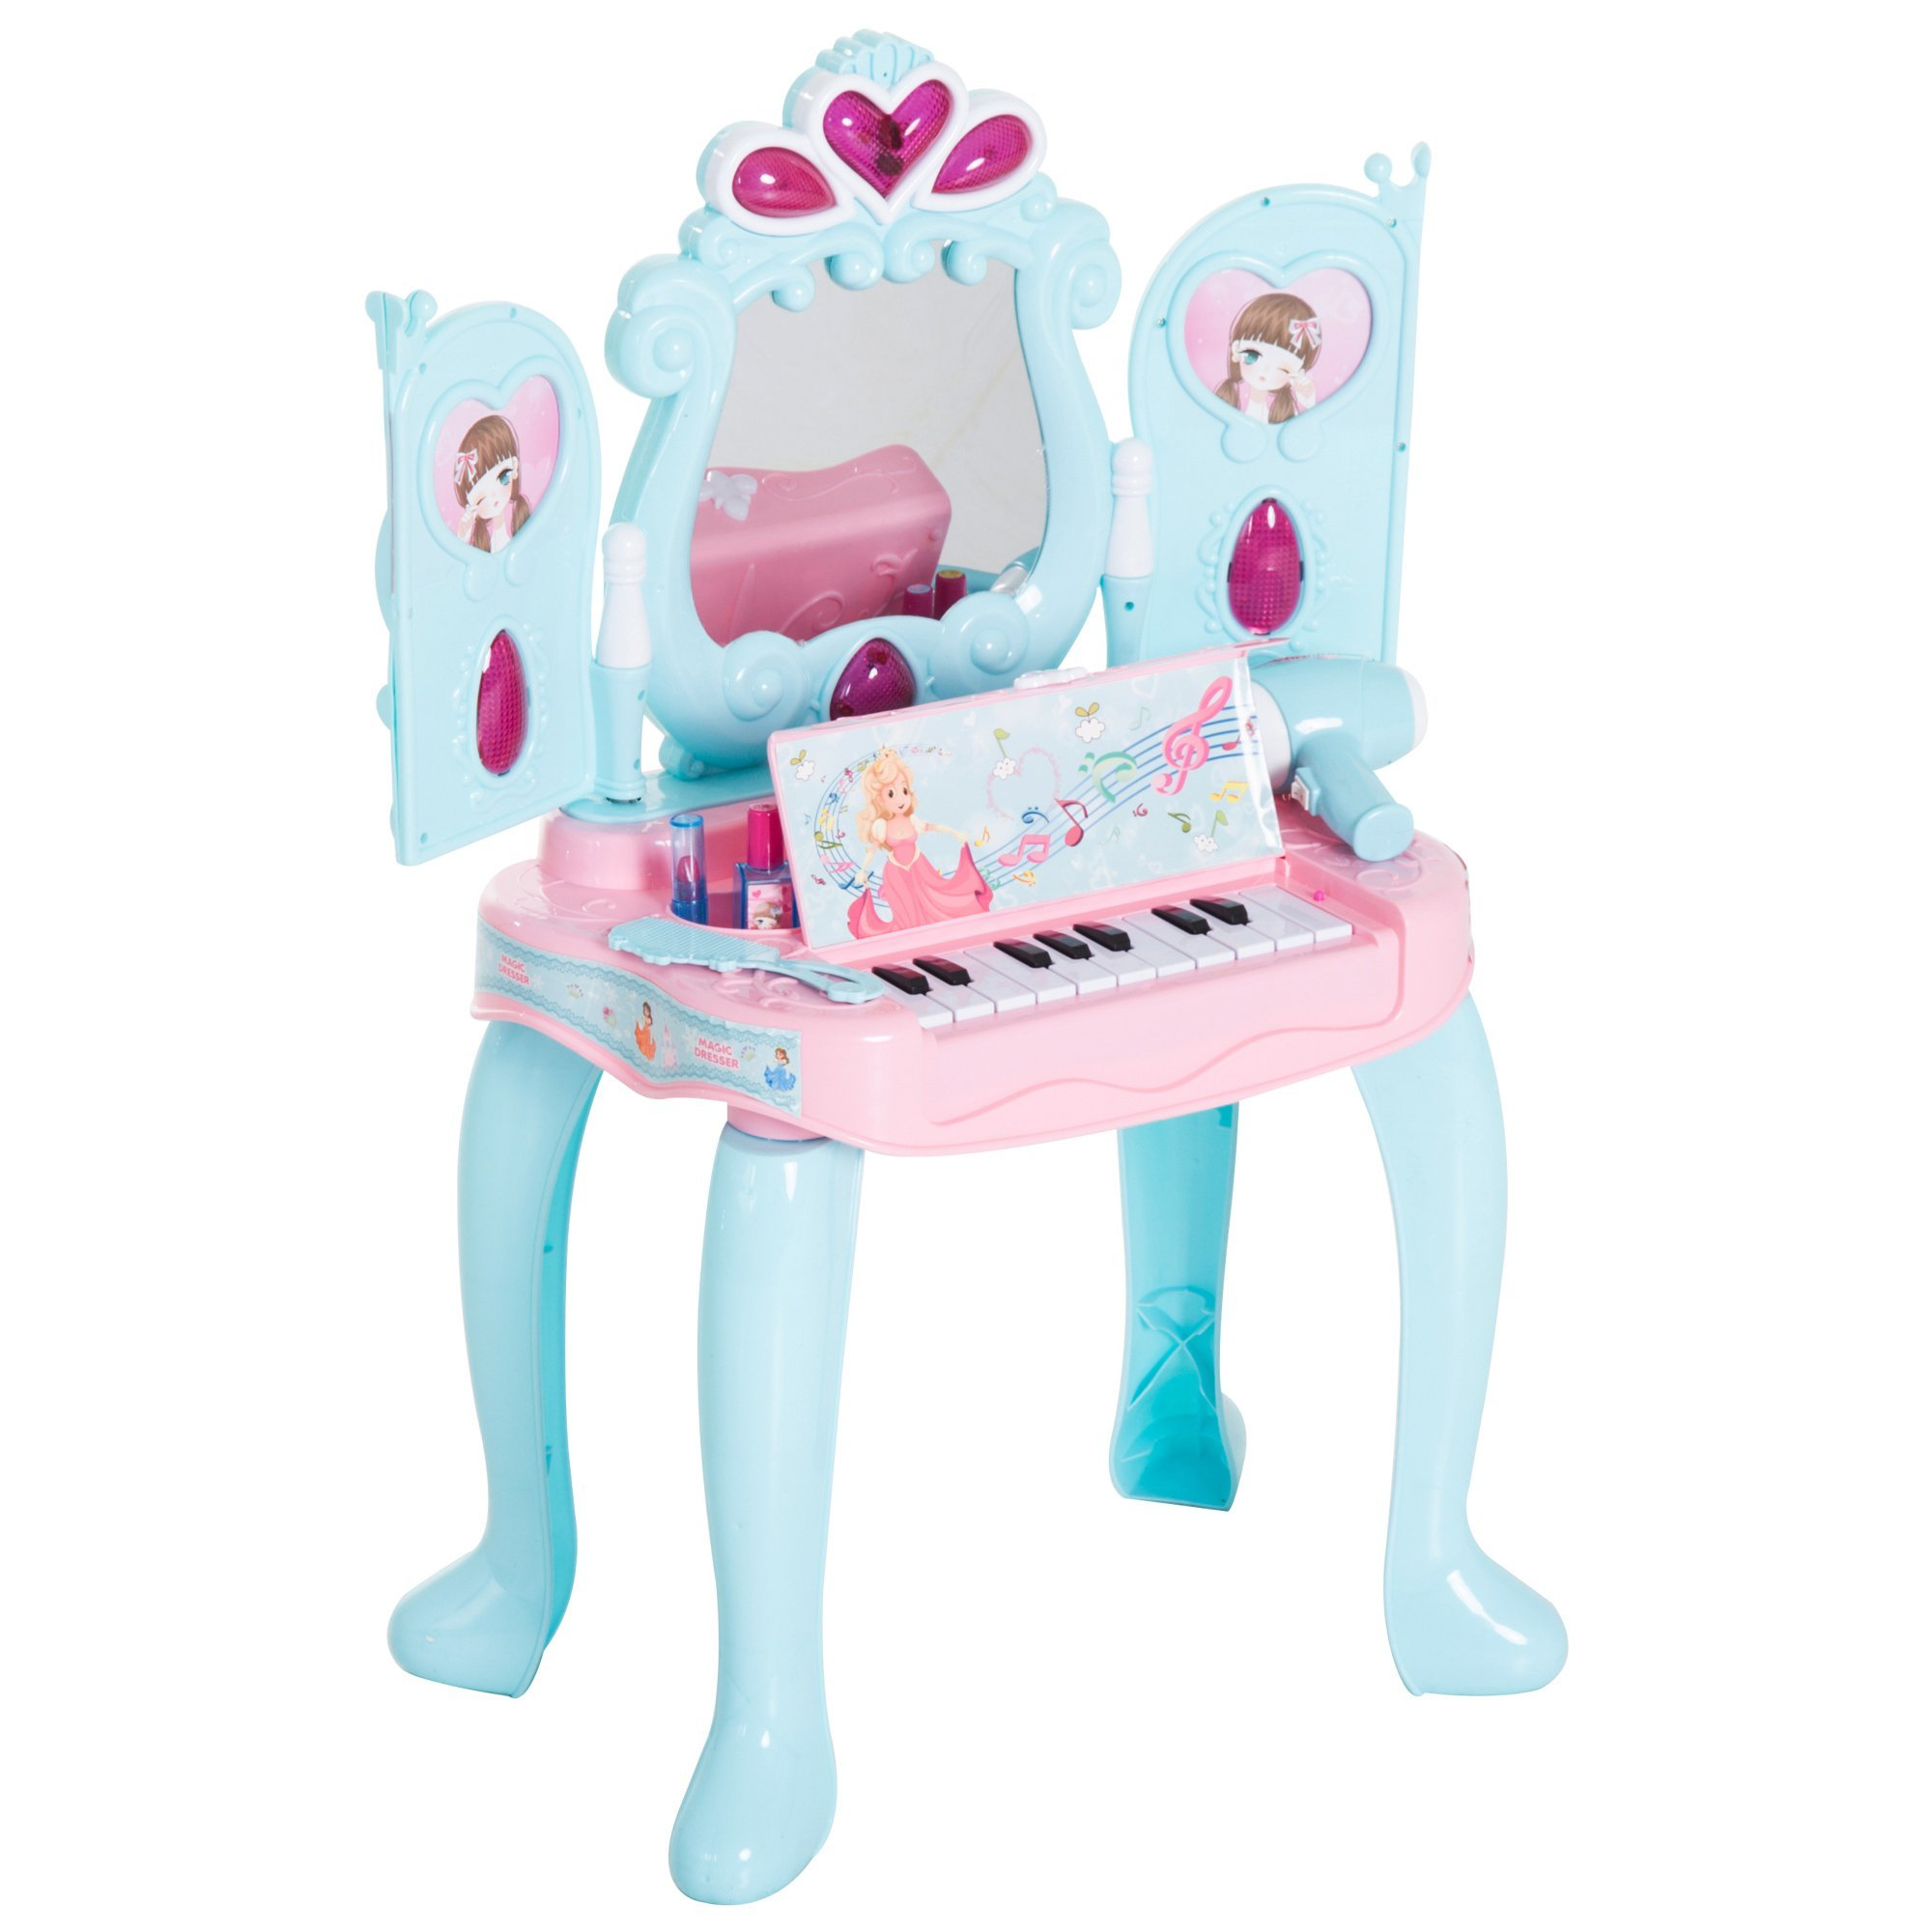 Qaba 2-in-1 Piano Vanity Table Princess Pretend Play Set with Lights, Sounds, and Accessories - Light Blue/Pink